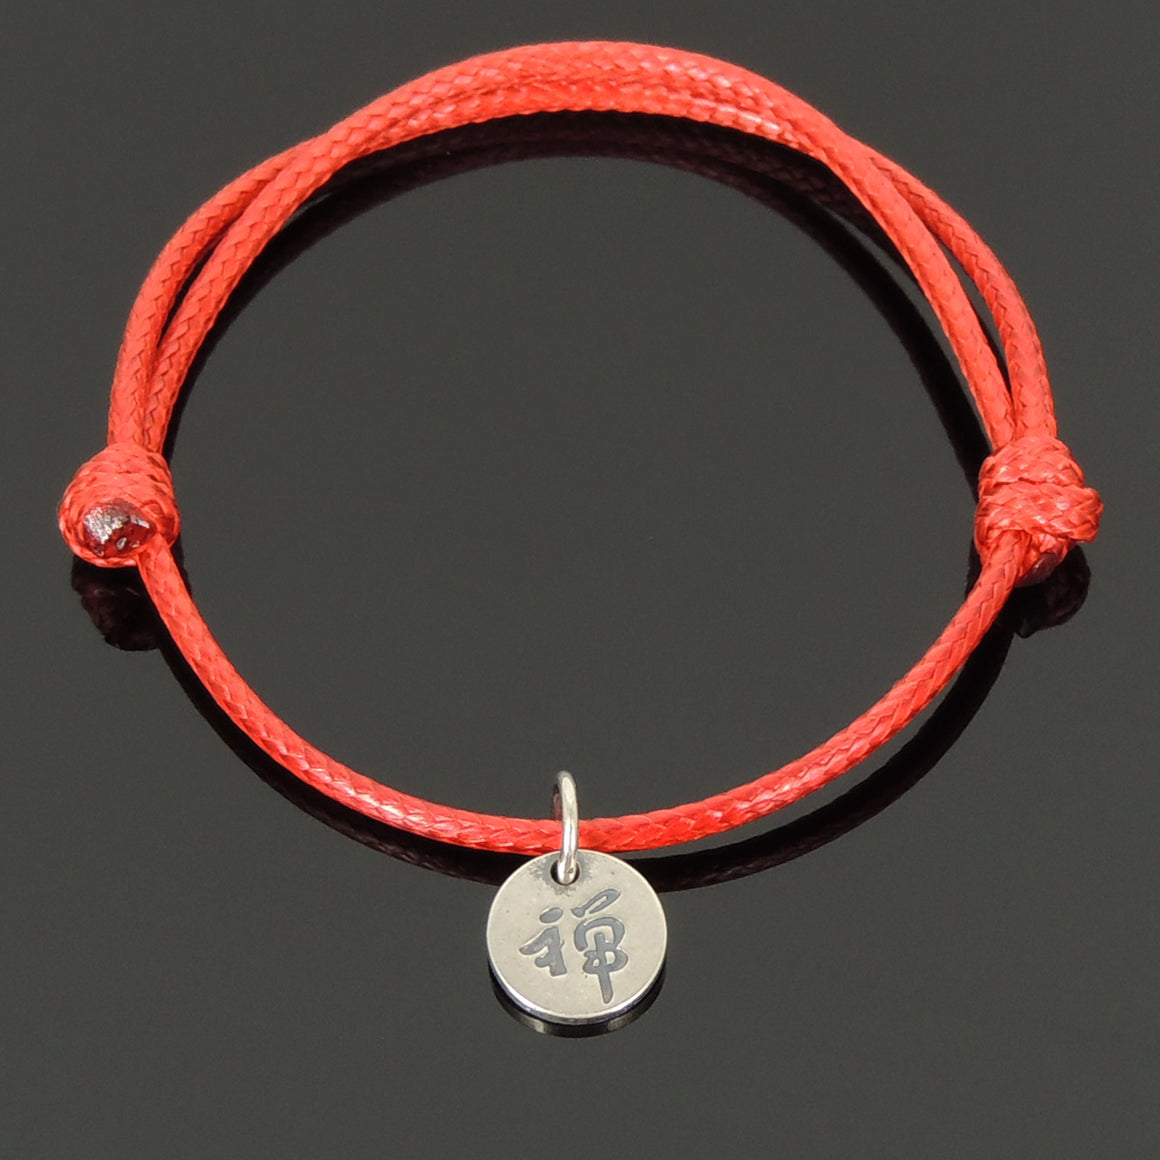 "Elegant Red Wax Rope Charm Bracelet | Chinese Calligraphy Symbol 禅 ""Zen"" 